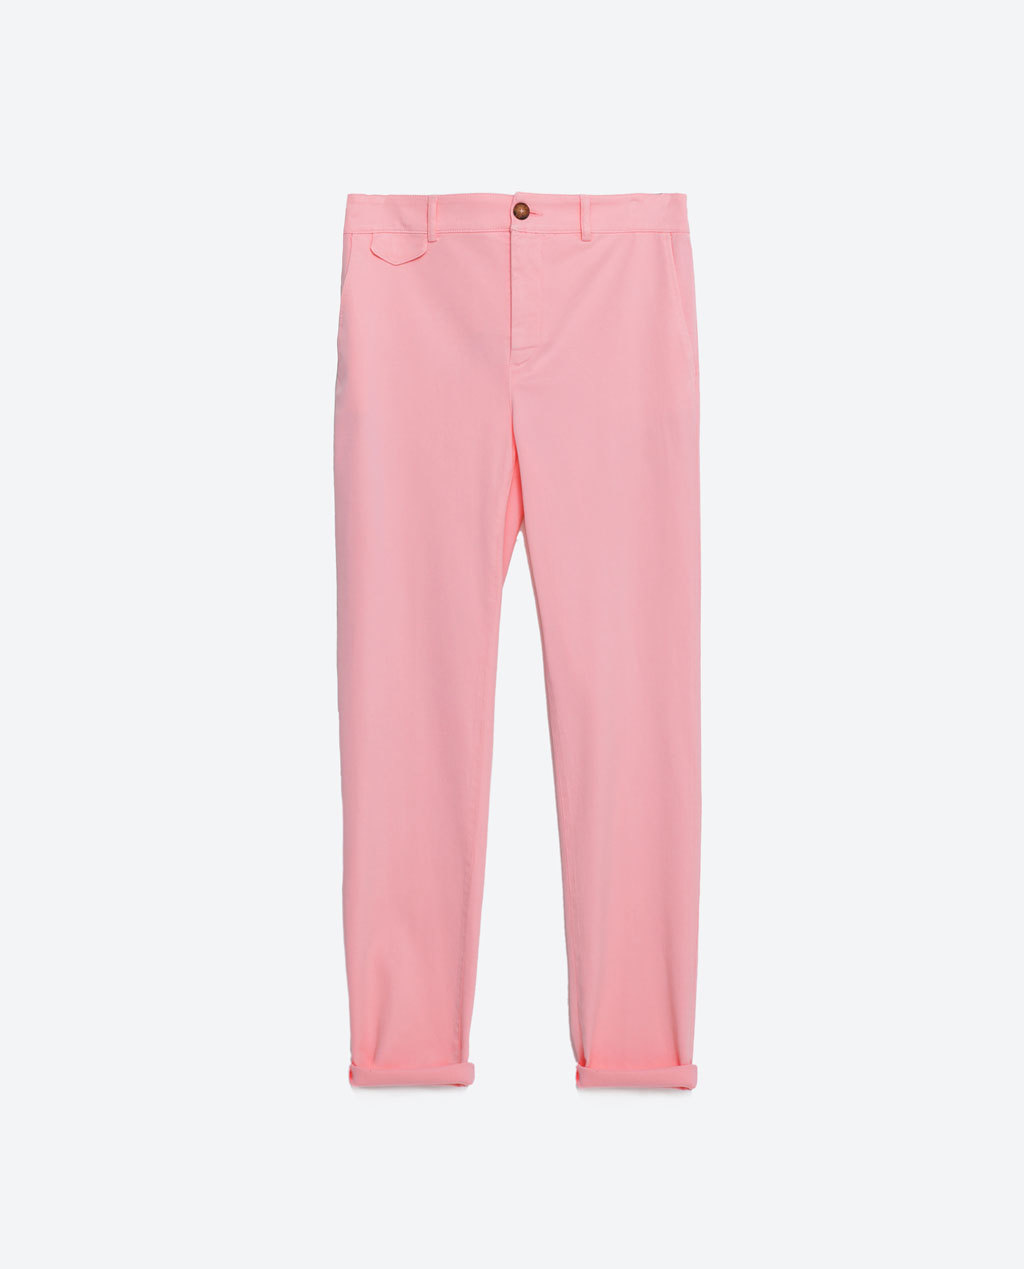 Neon Chinos - length: standard; pattern: plain; waist: mid/regular rise; predominant colour: pink; occasions: casual, holiday; style: chino; fibres: cotton - 100%; jeans & bottoms detail: turn ups; texture group: cotton feel fabrics; fit: straight leg; pattern type: fabric; season: s/s 2016; wardrobe: highlight